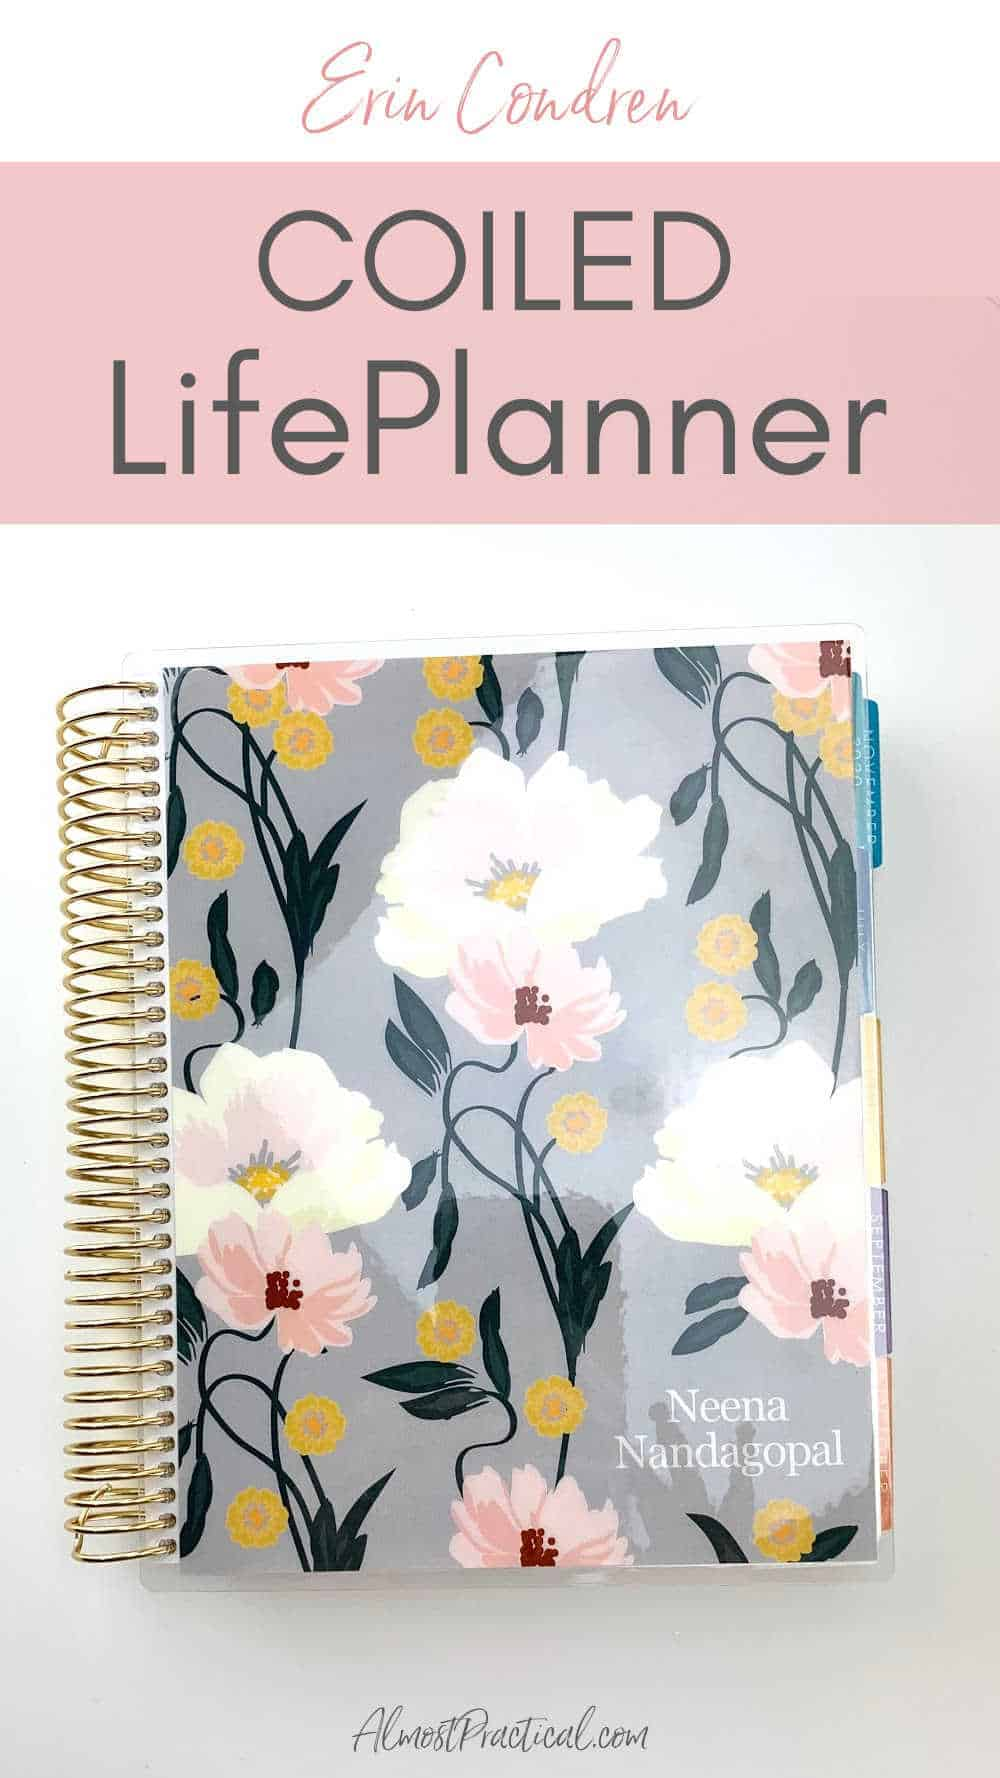 Erin Condren Coiled LifePlanner